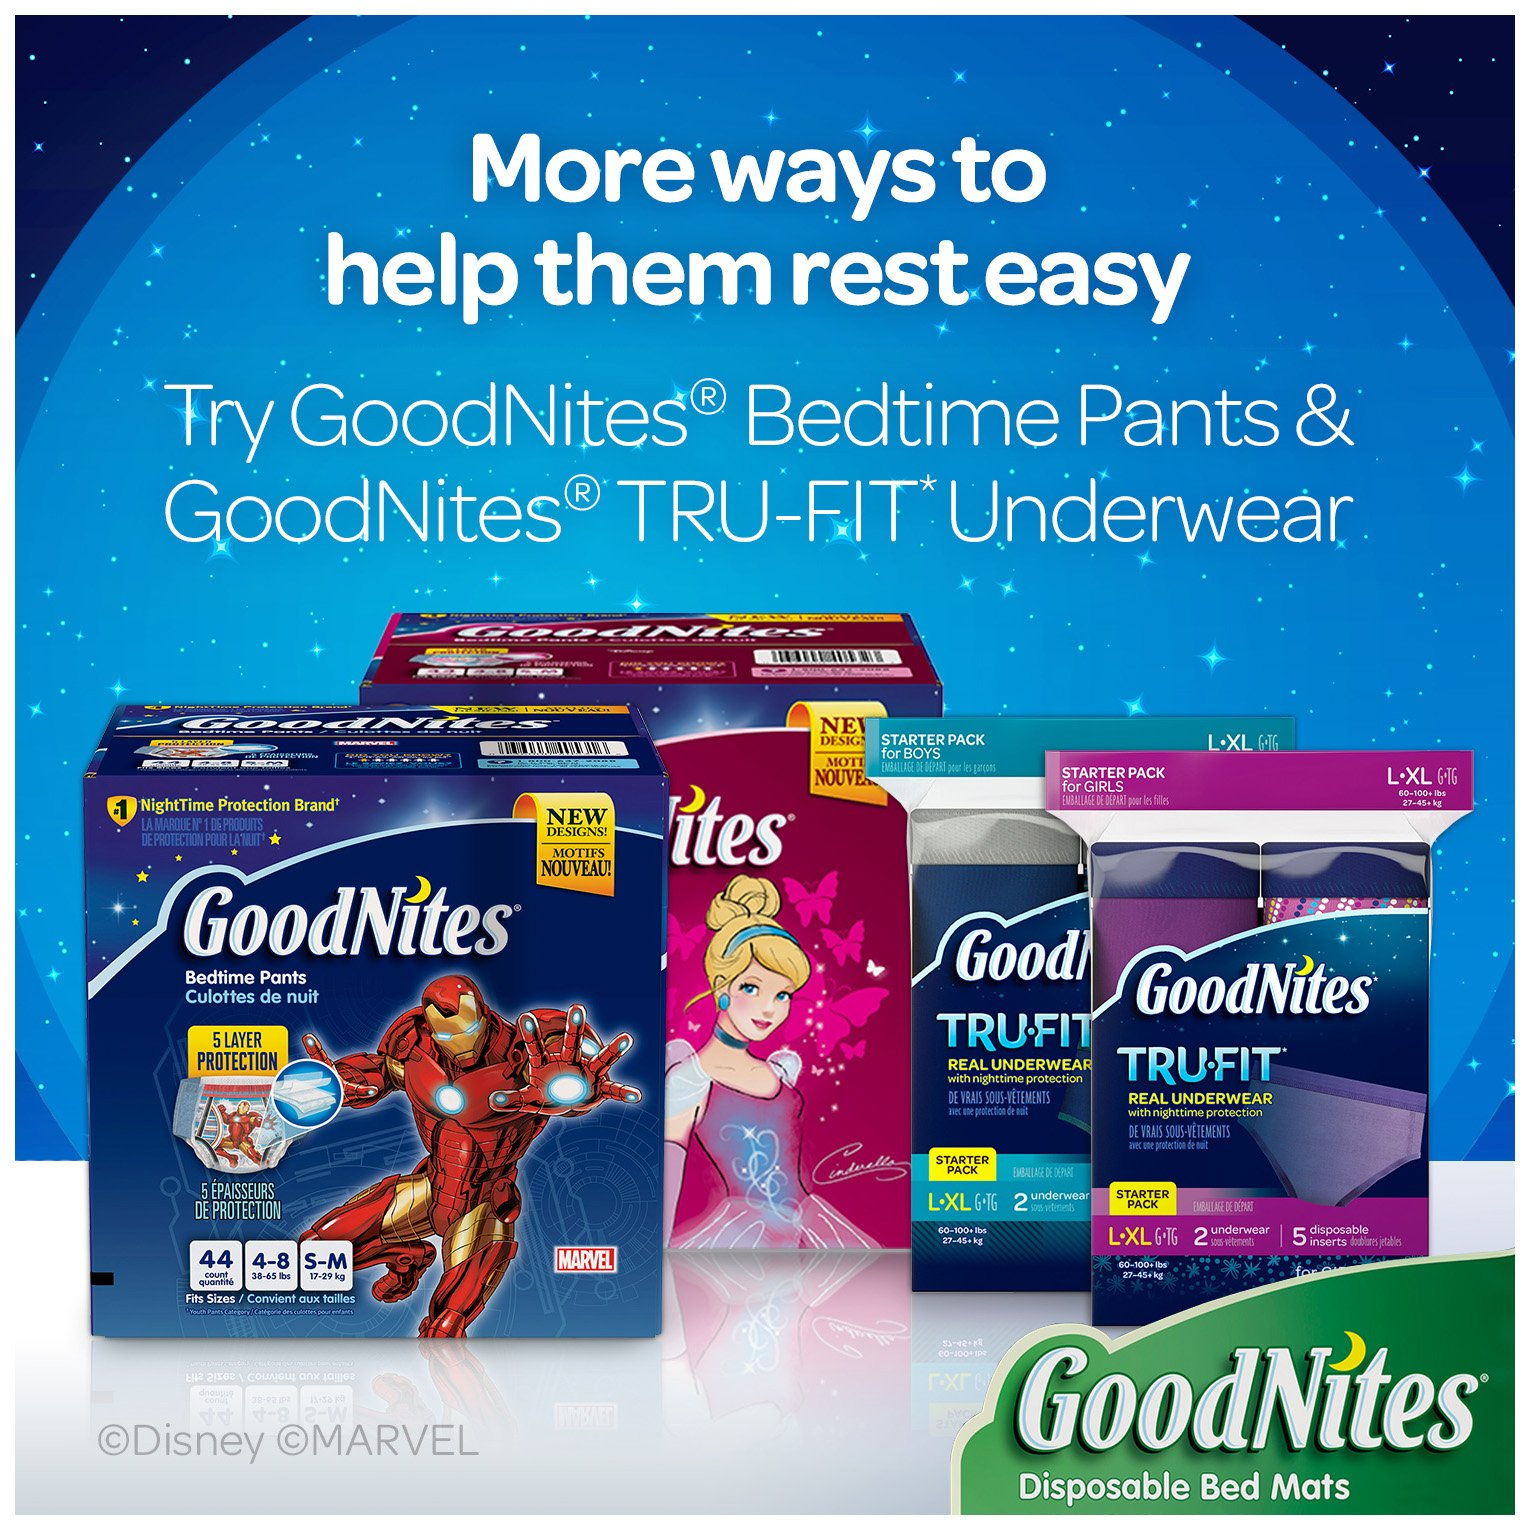 GoodNites Disposable Bed Mats, 36 Count by GoodNites (Image #7)